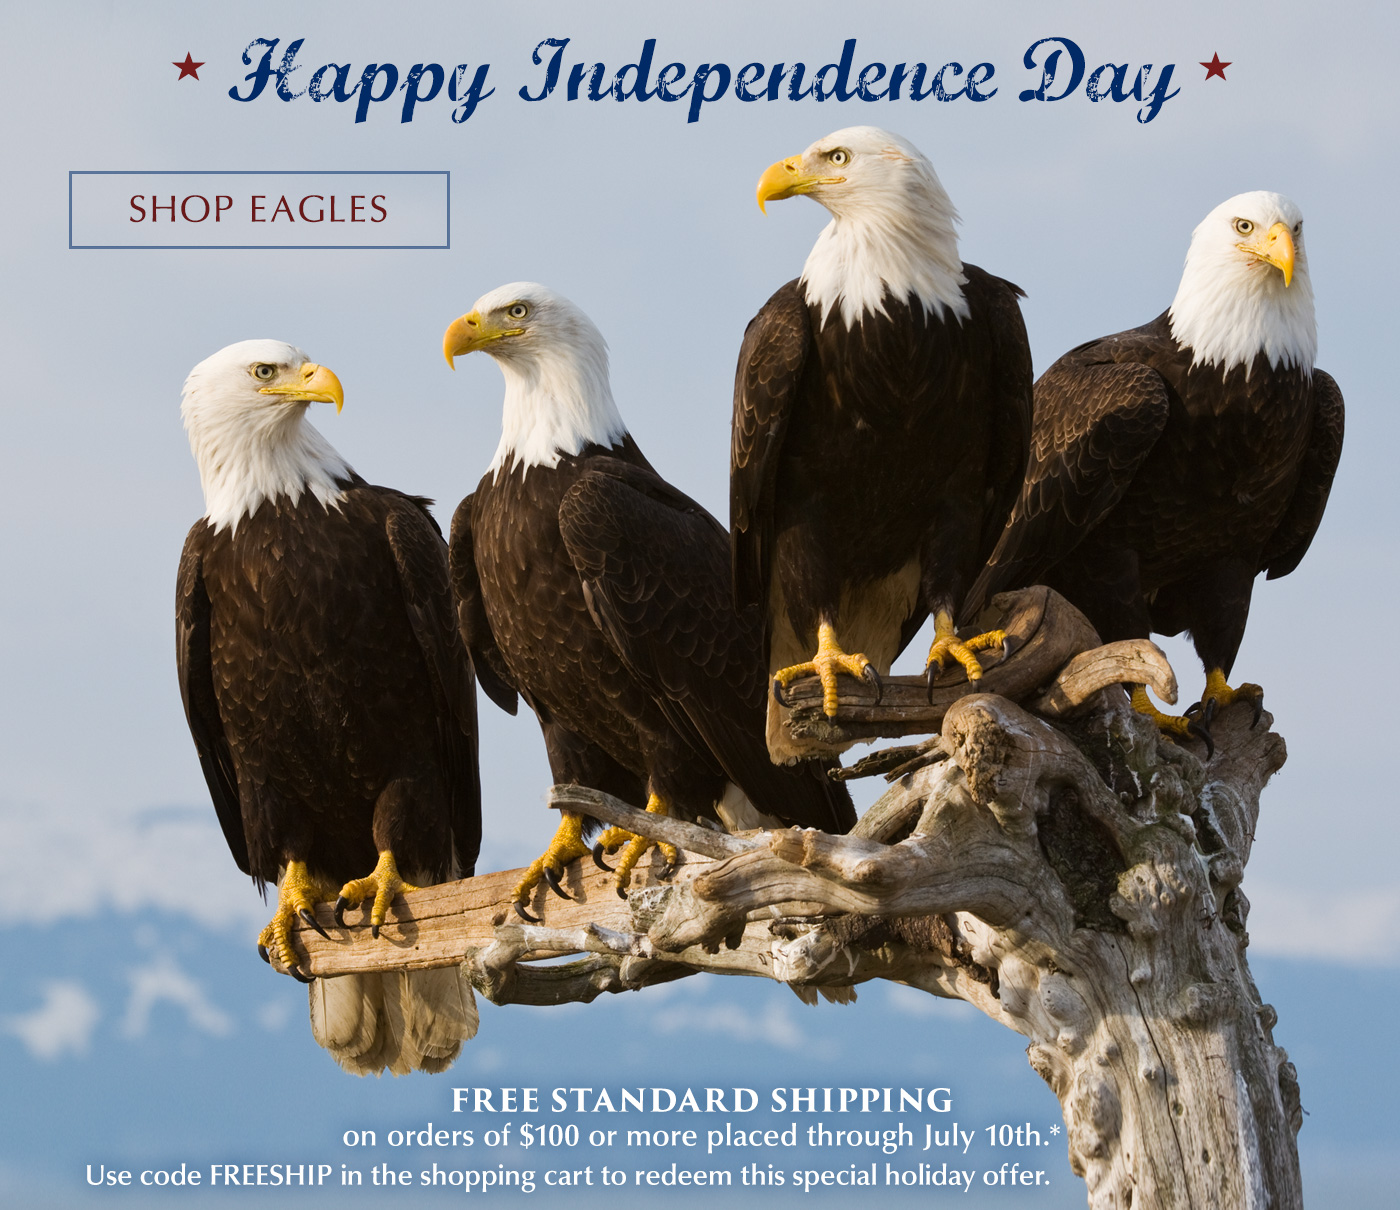 Have a Safe and Wonderful Independence Day!